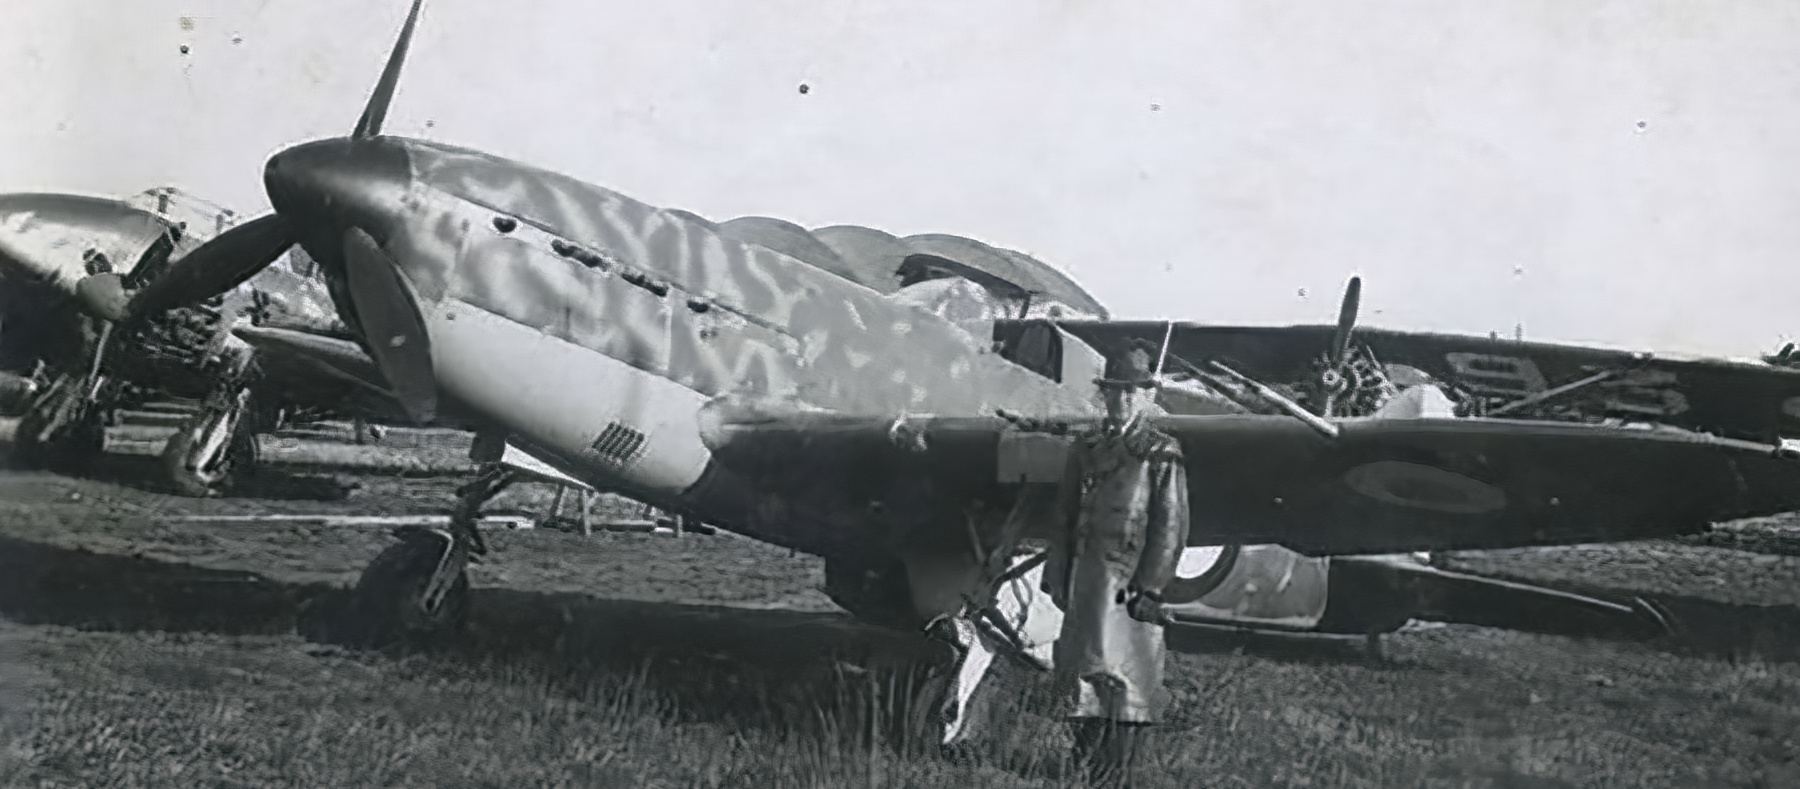 French Airforce Arsenal VG 33 sits abandoned after the fall of France June 1940 ebay 02